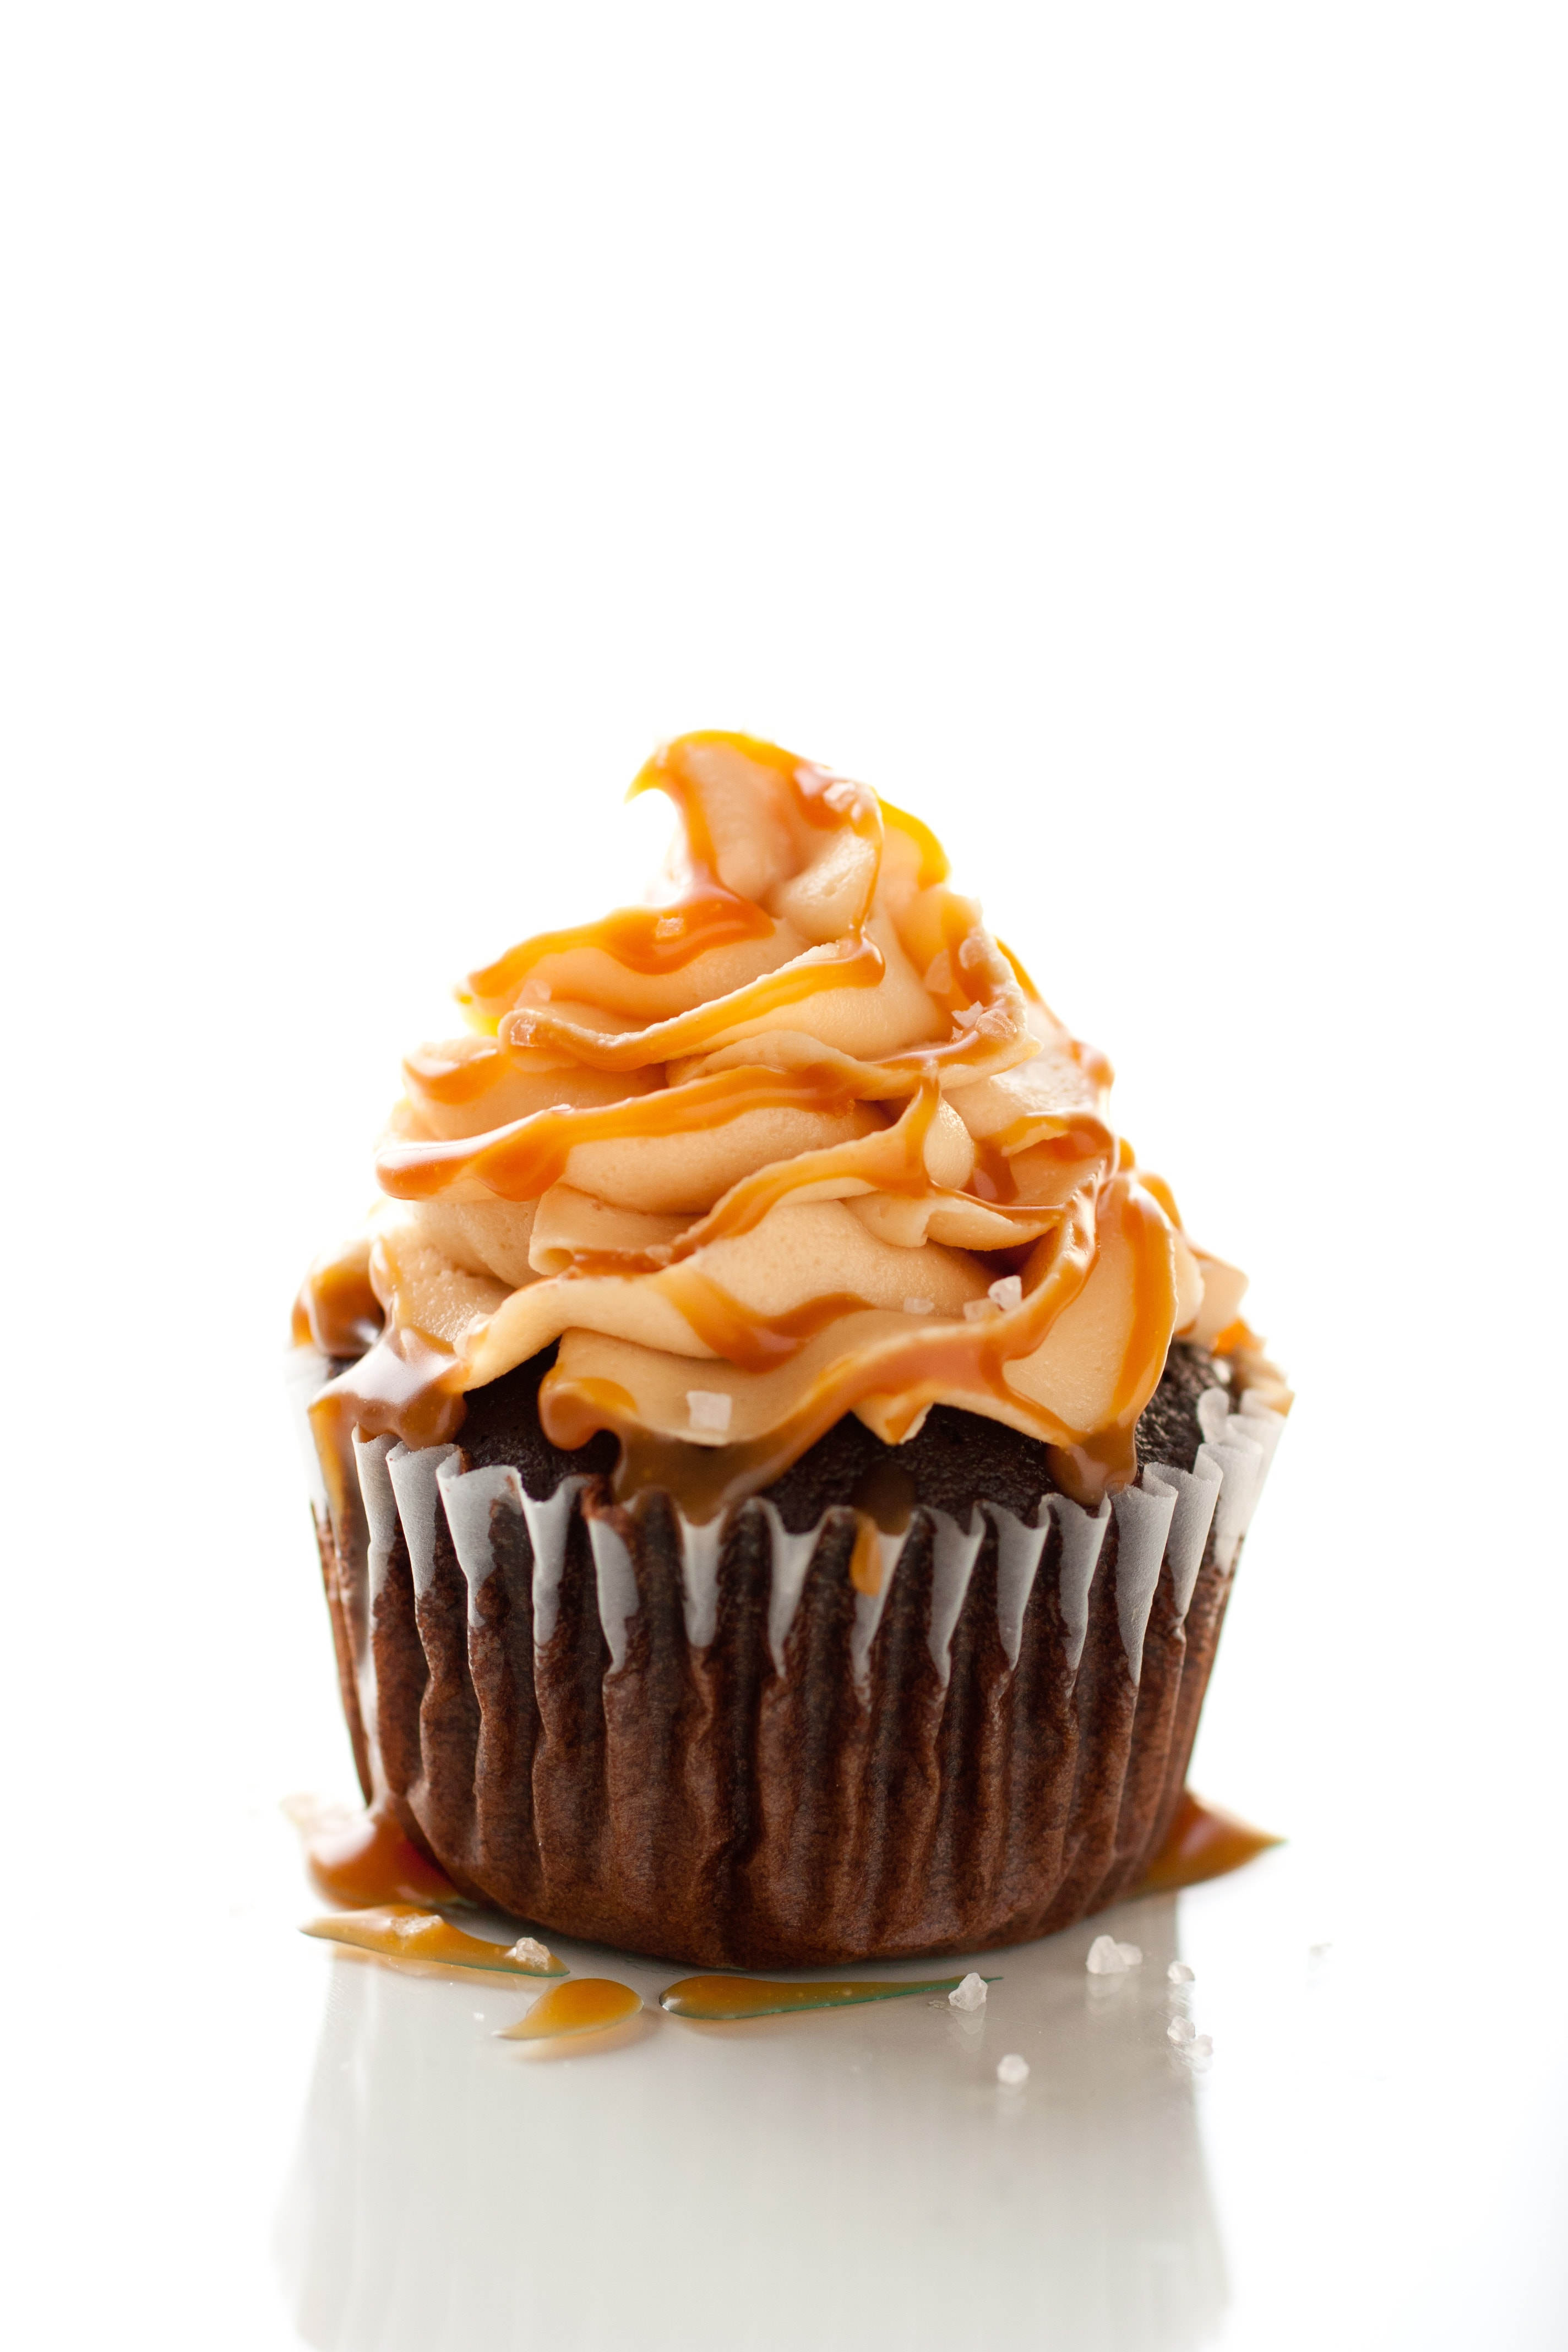 Salted Caramel Cupcakes with Chocolate Frosting